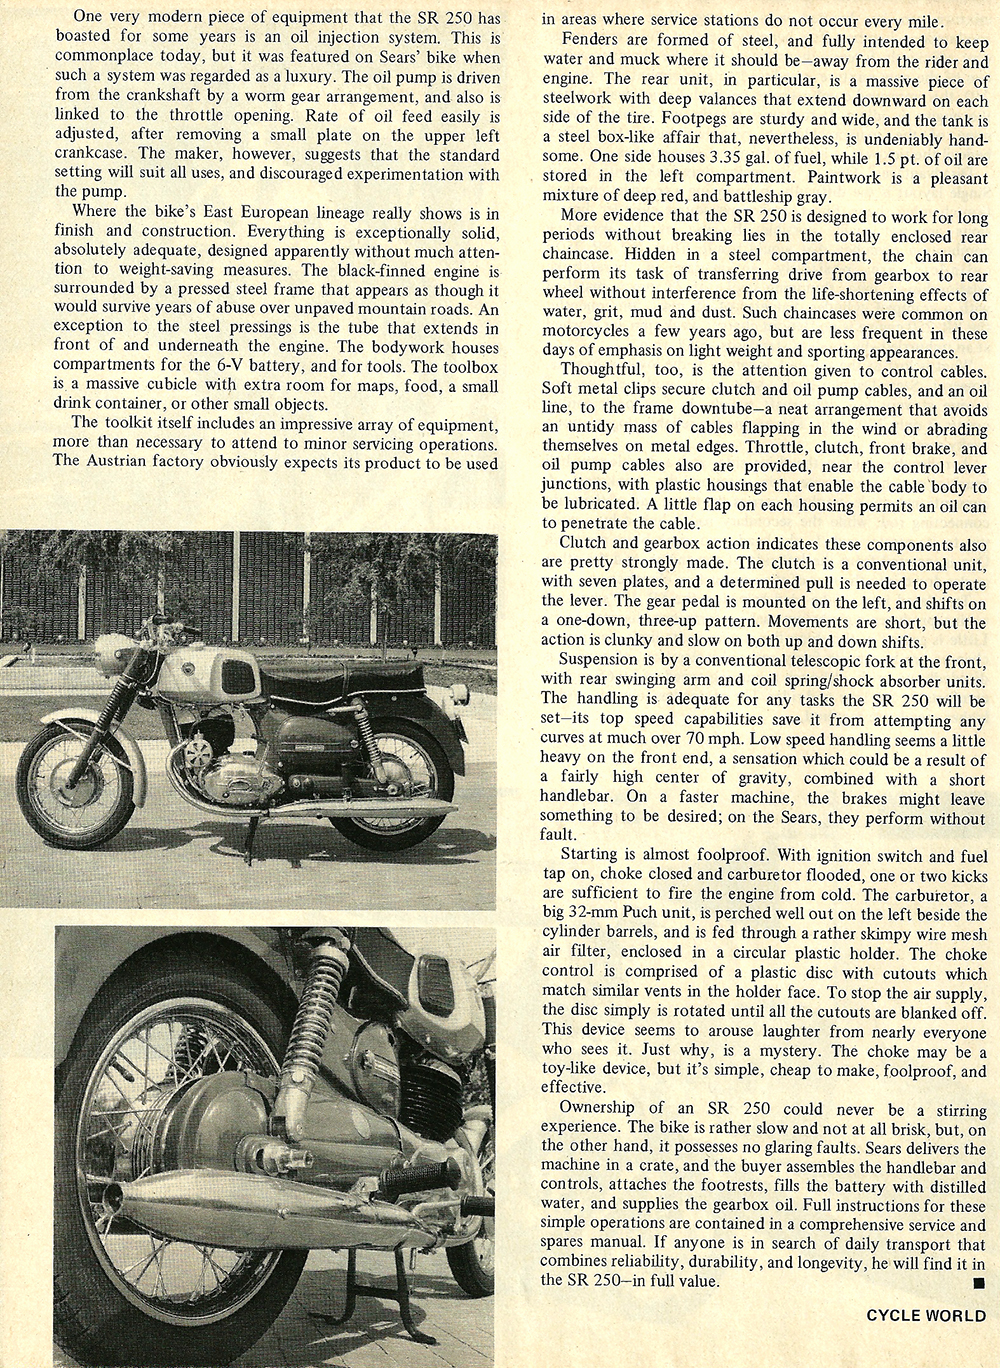 1968 Sears SR 250 road test 03.jpg